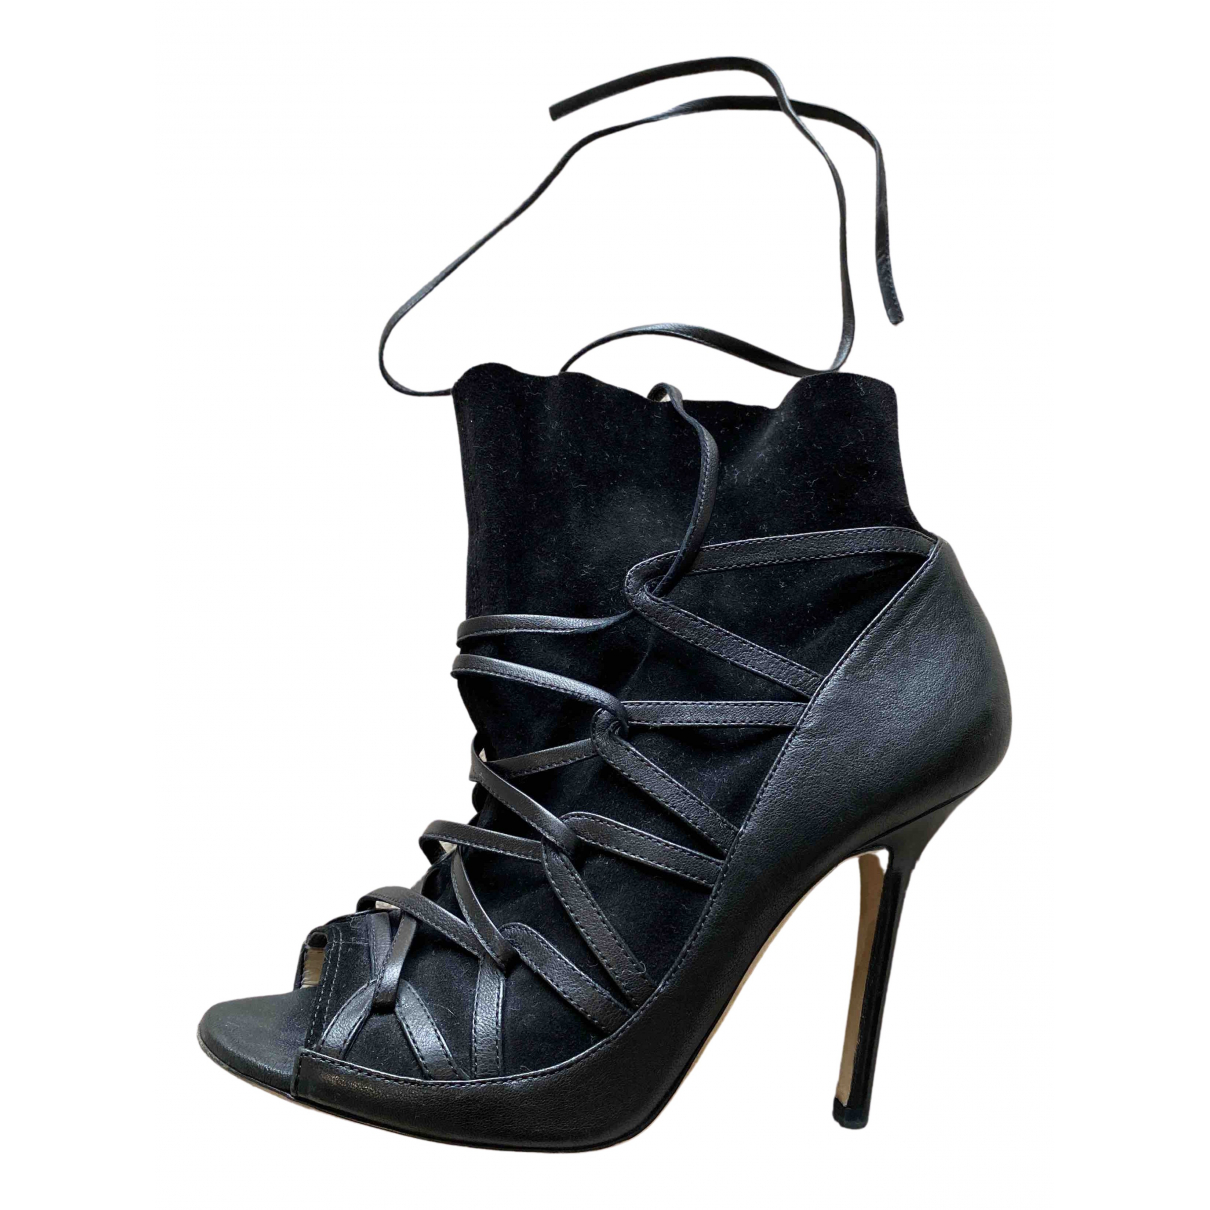 Jimmy Choo N Black Leather Ankle boots for Women 35.5 EU